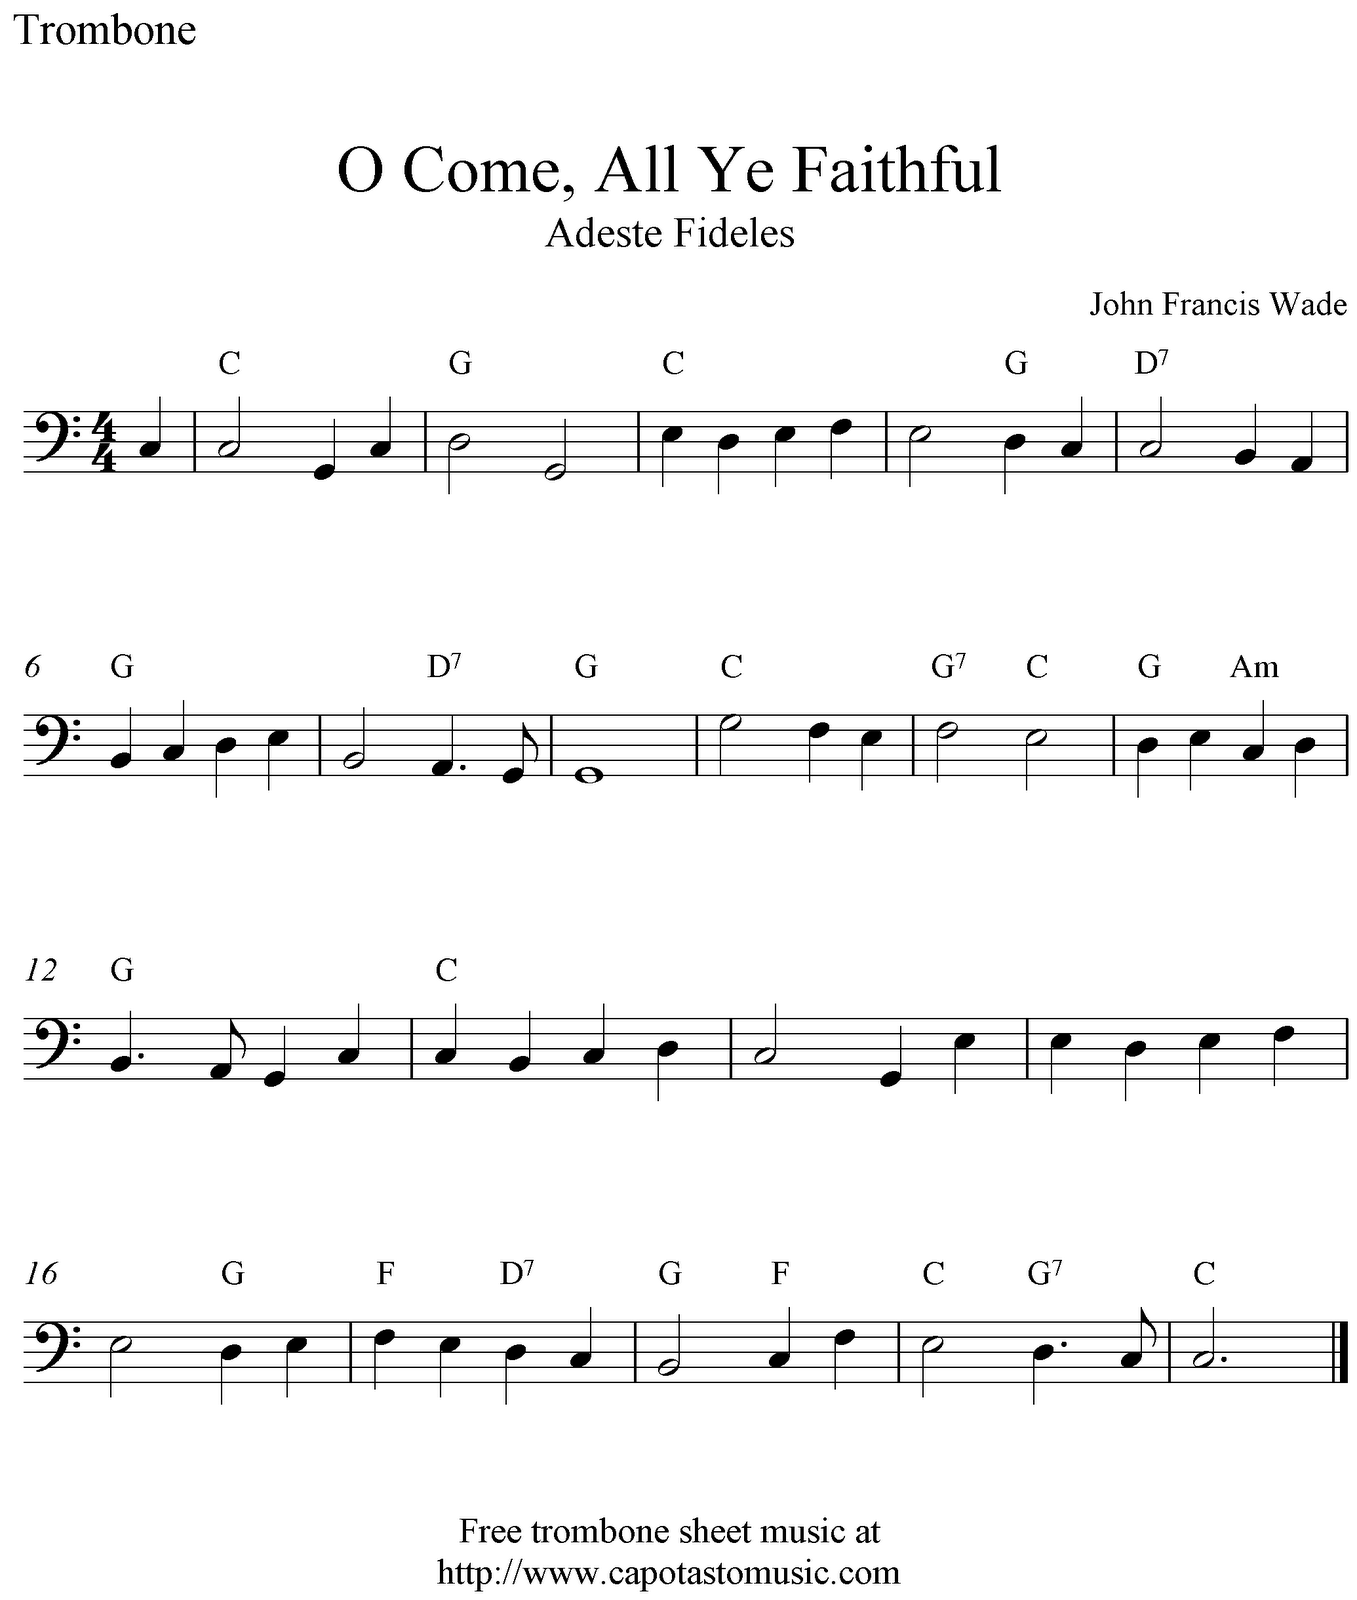 O Come, All Ye Faithful, simple music for trombone. | Music & Things ...